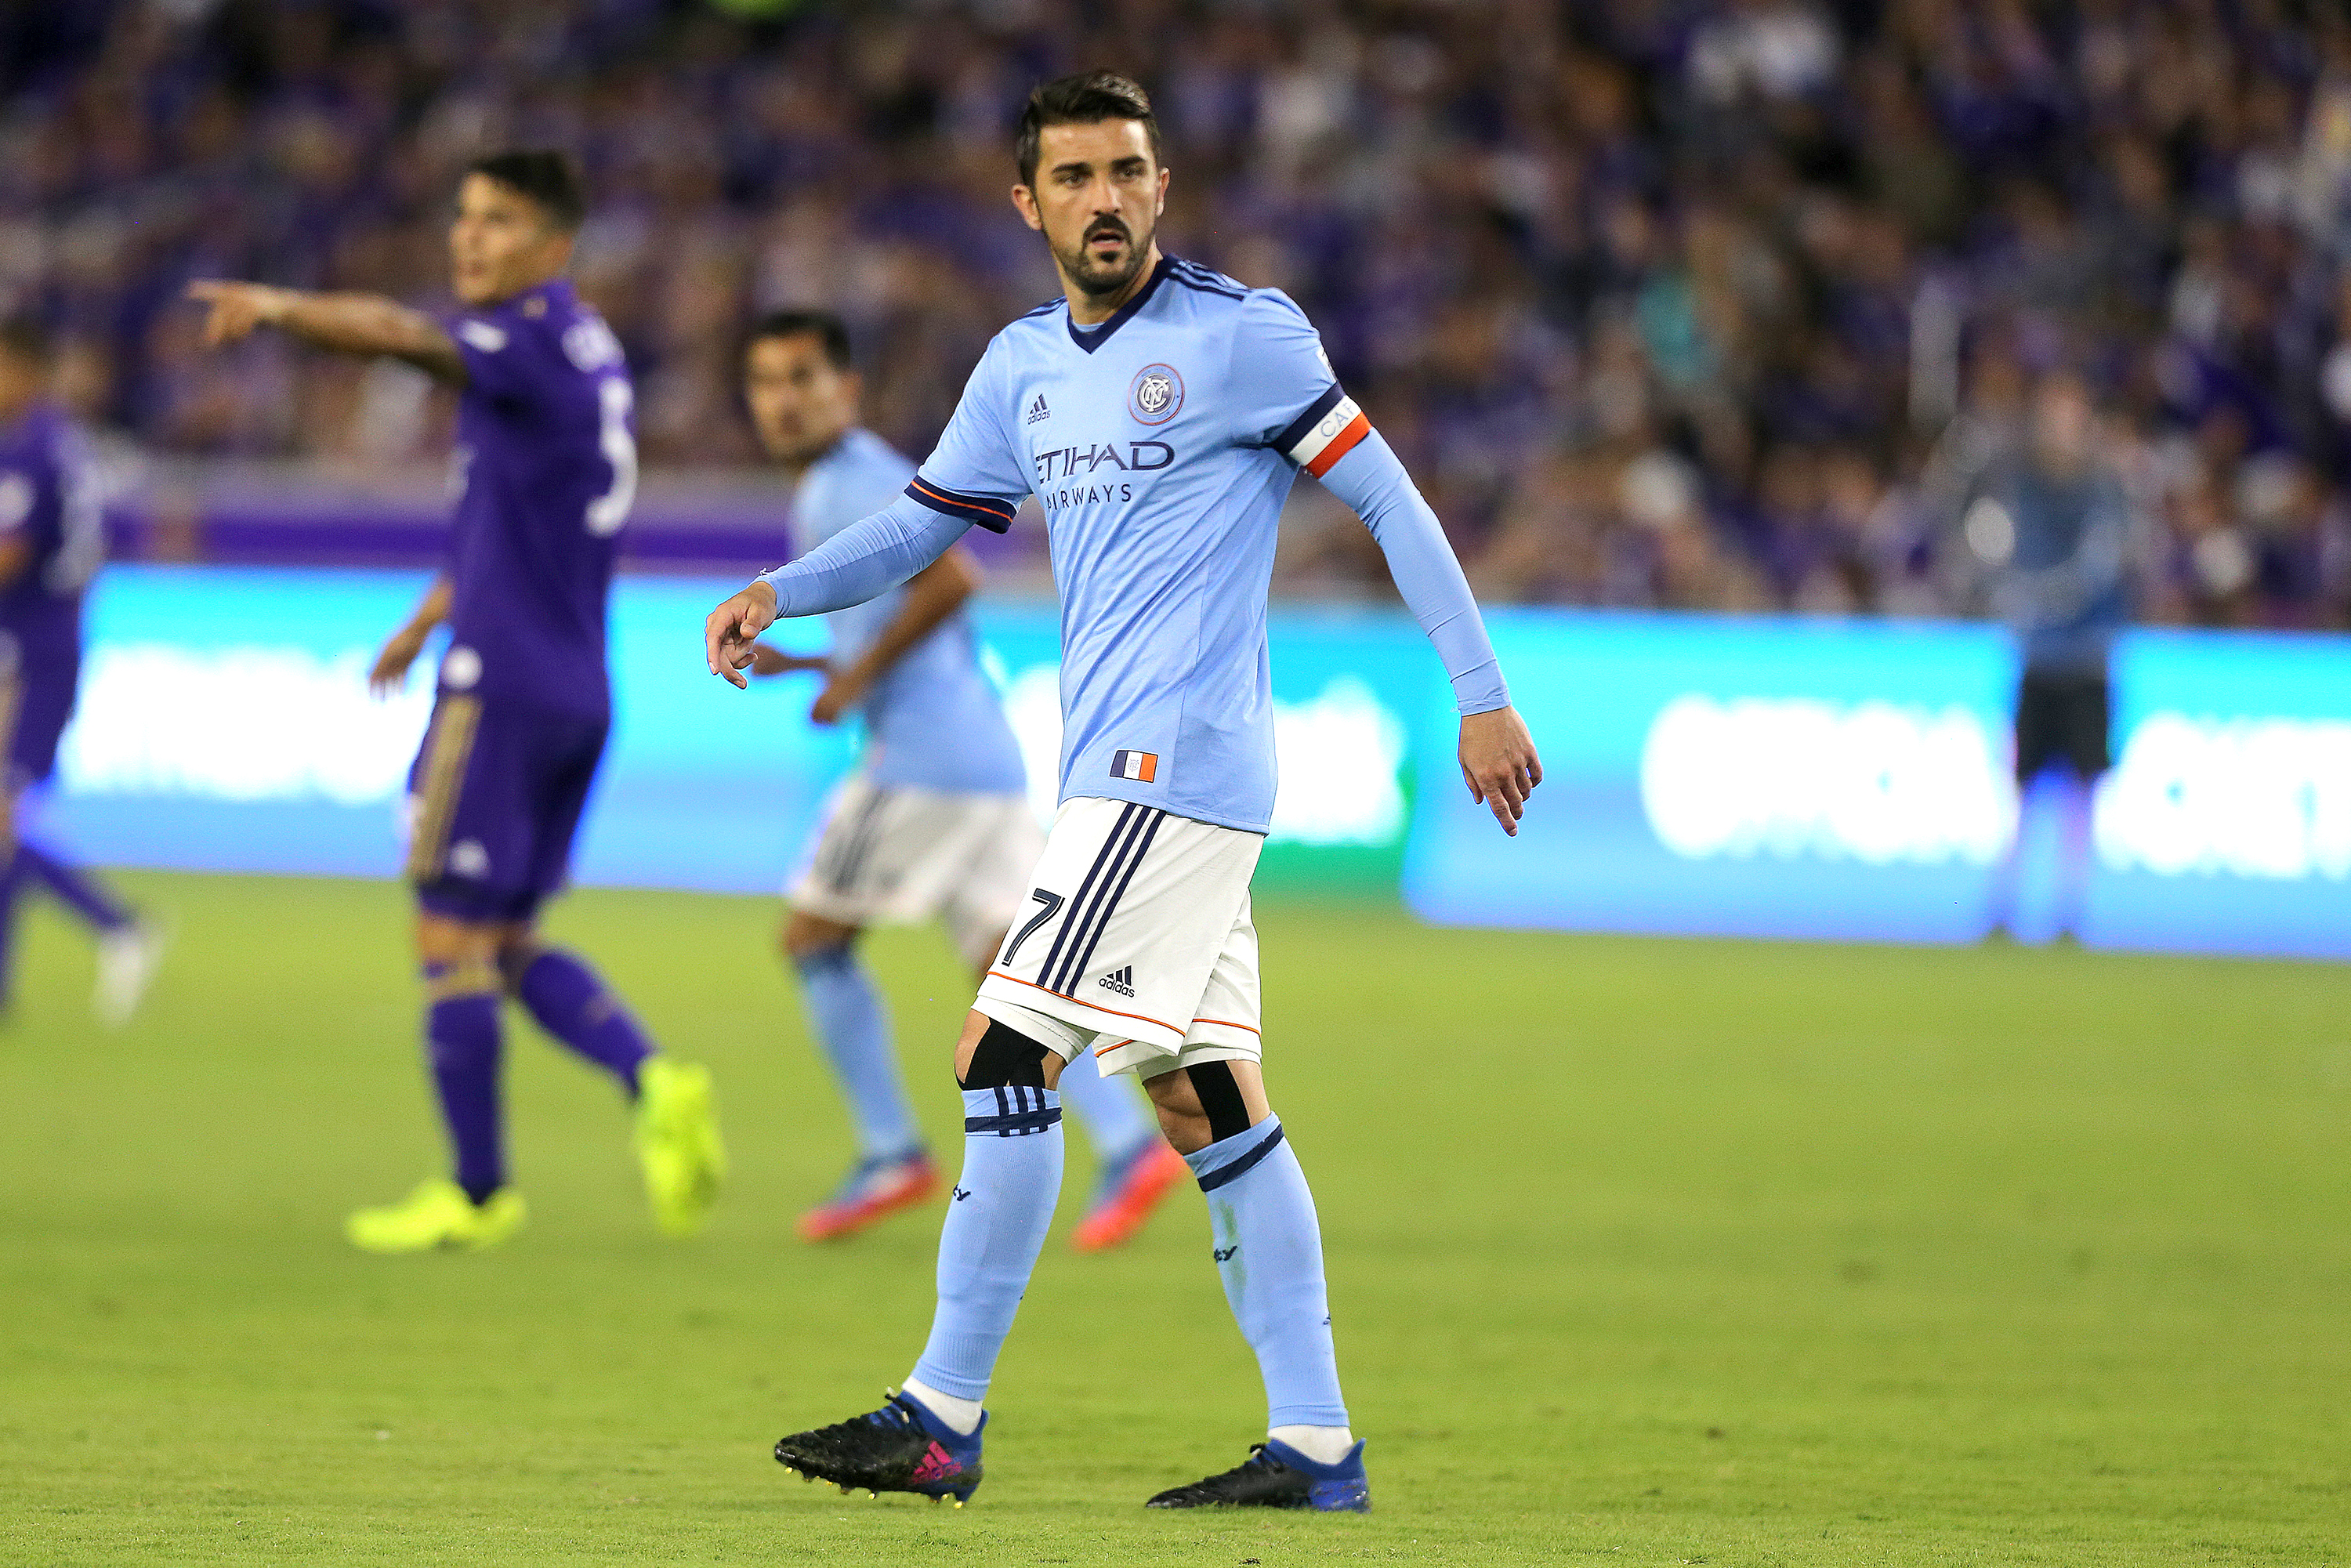 David Villa Lifts NYCFC to 3 2 Victory in the Hudson River Derby